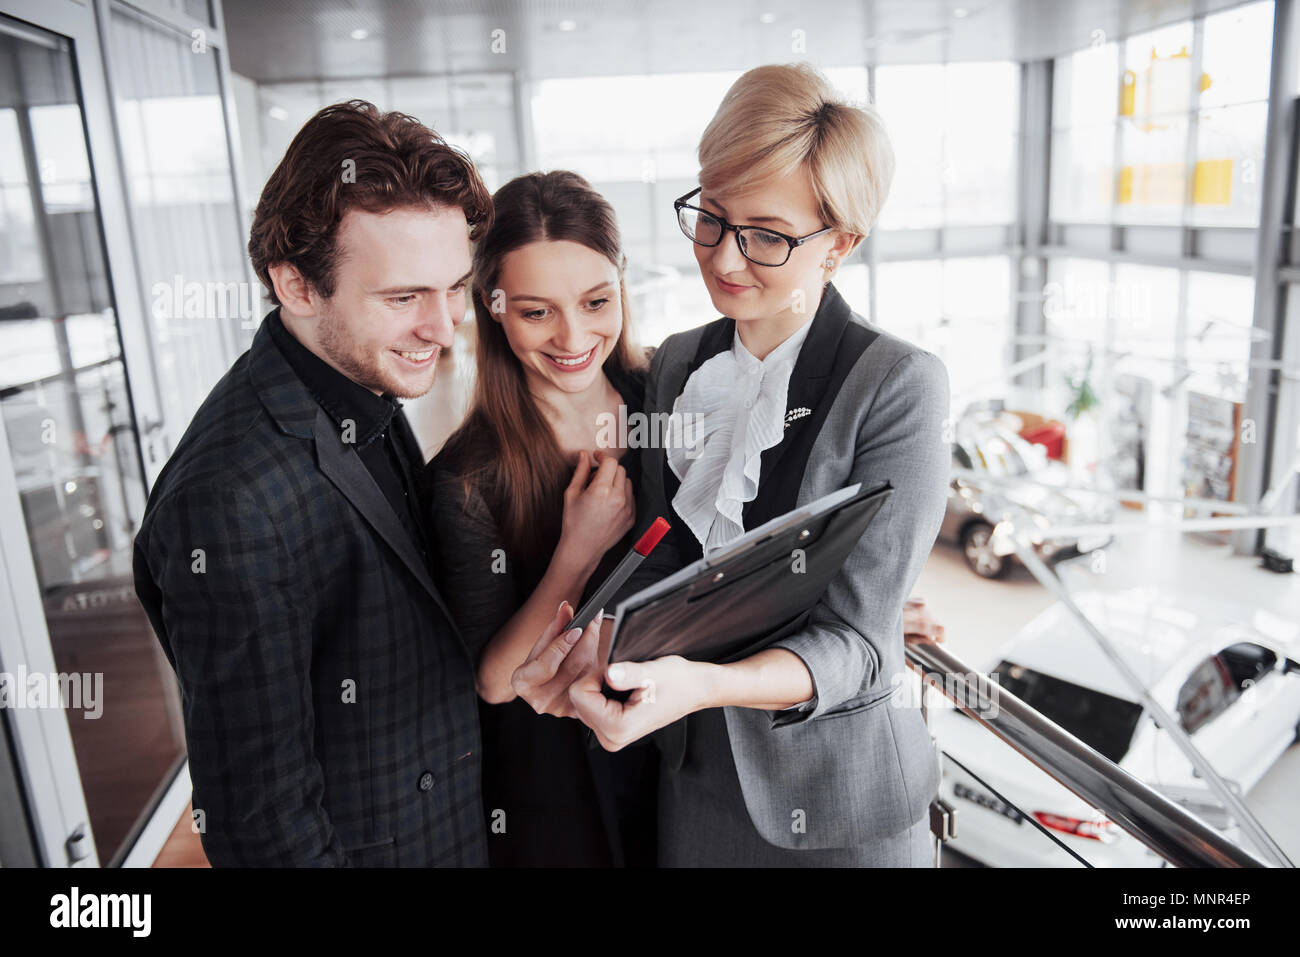 Group of young business people working together in big coworking office. Marketing department discussing product plan. New startup company - Stock Image